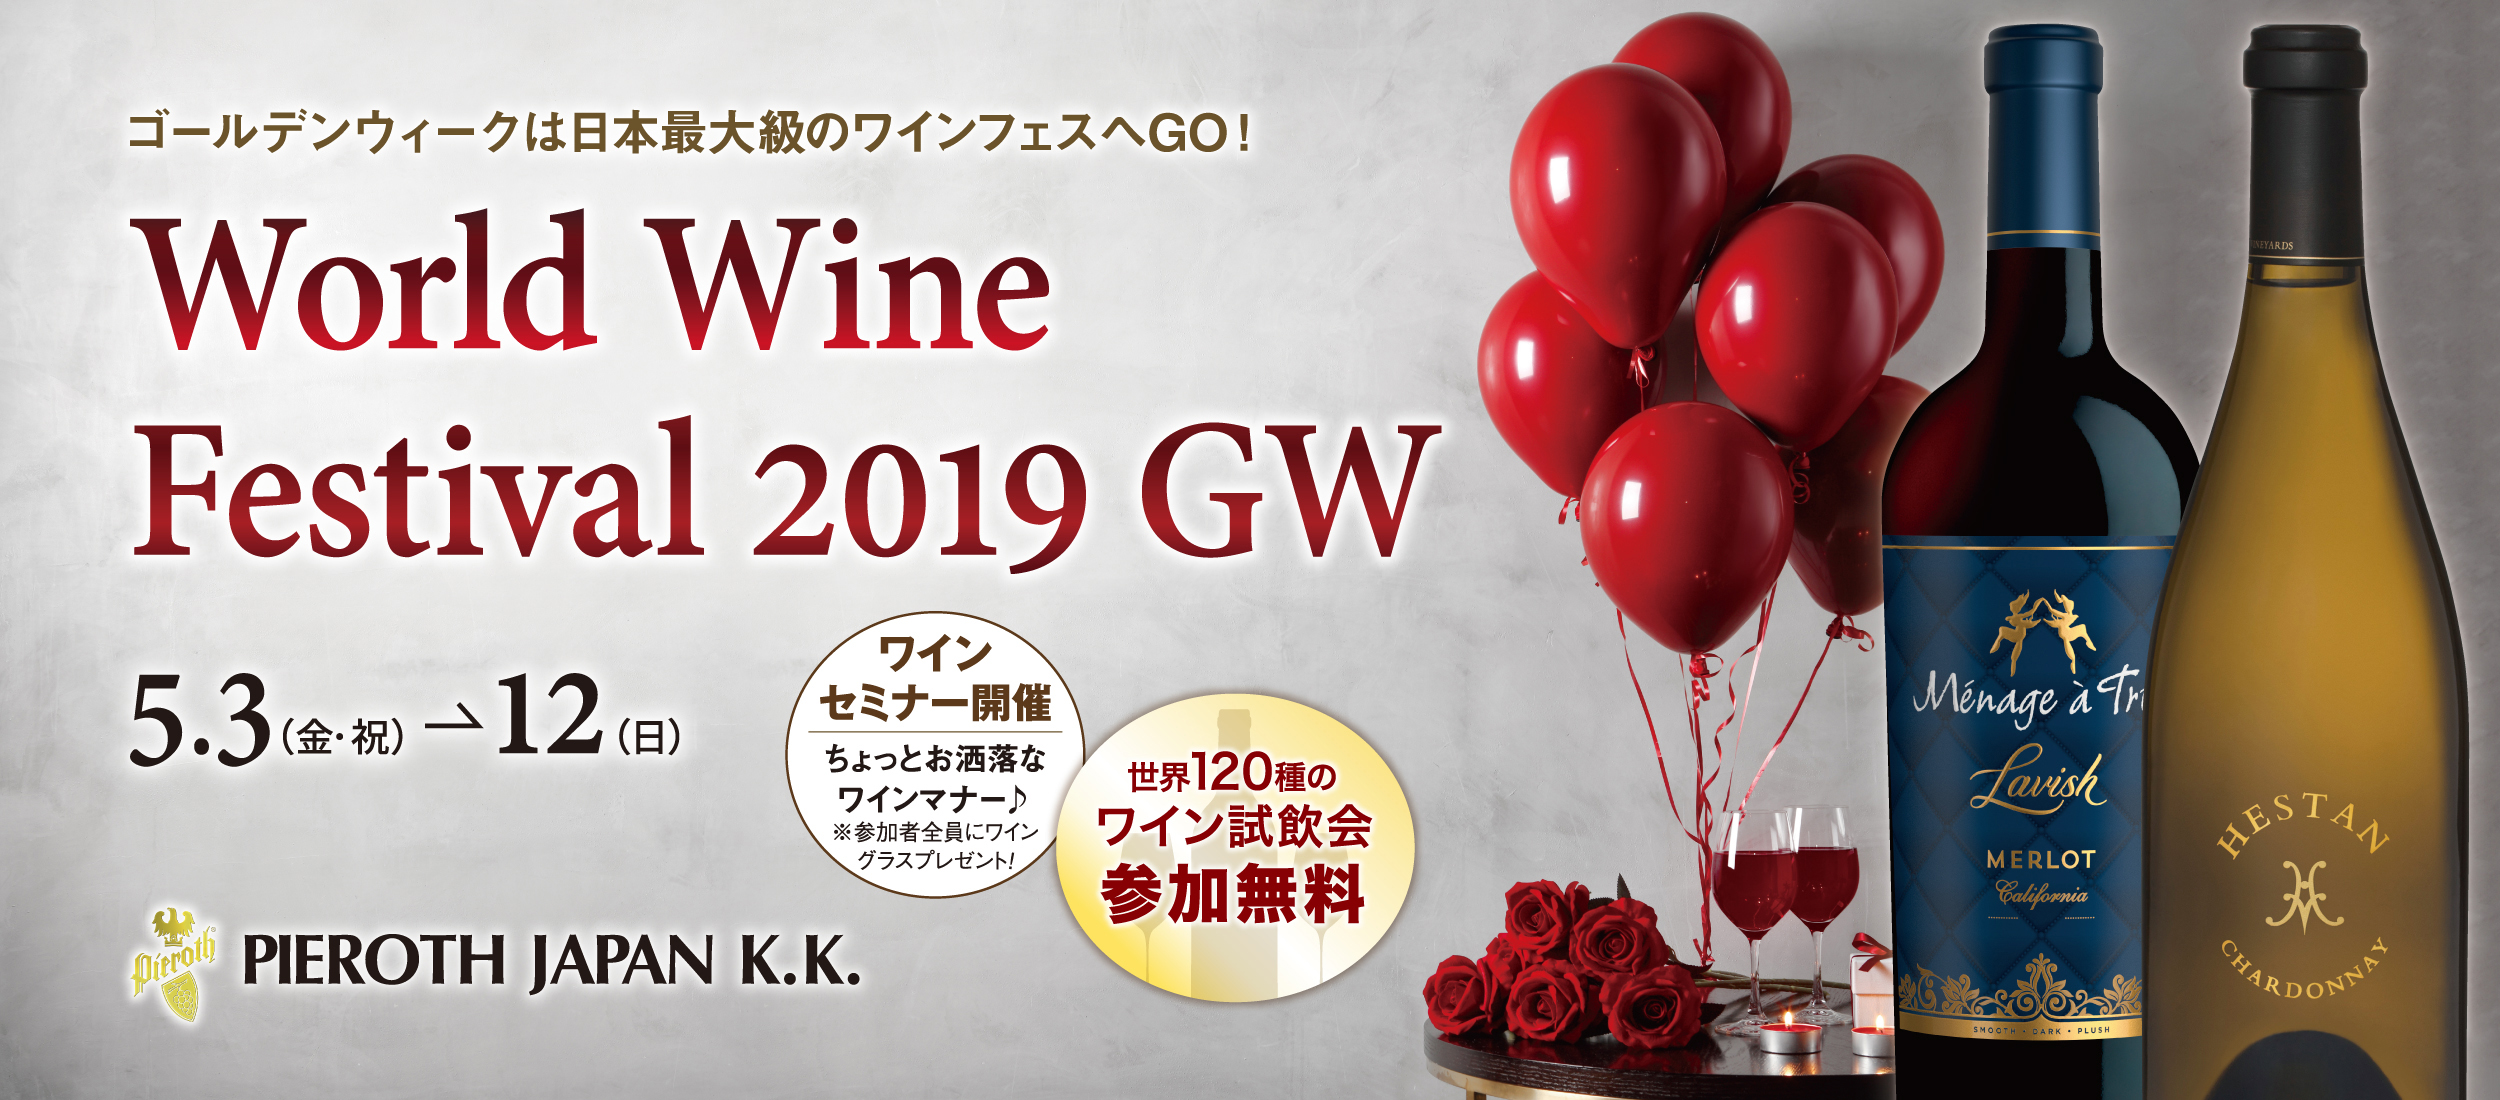 WorldWineFestival Midtown Hibiya